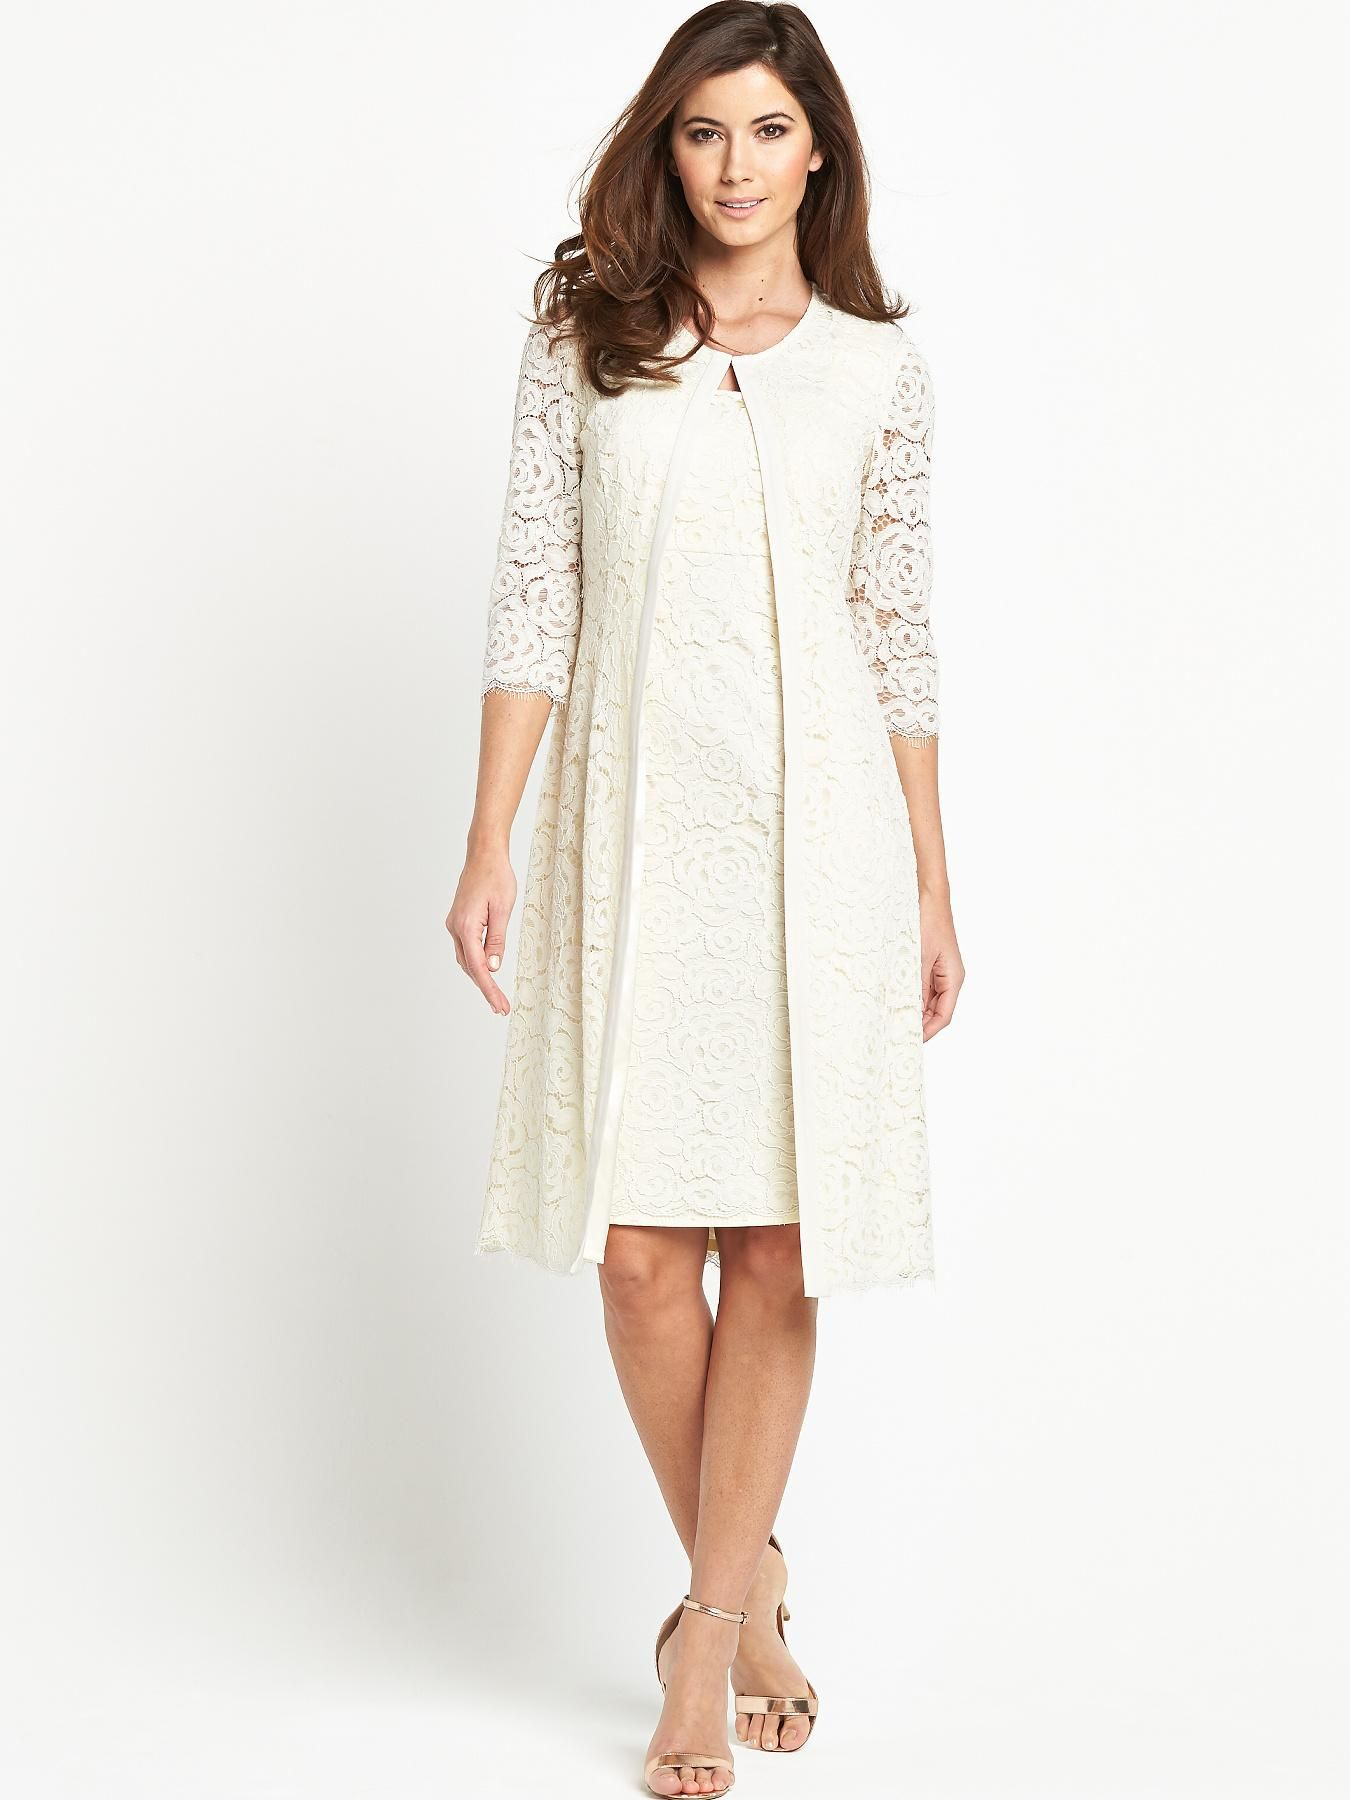 Berkertex lace coat and dress ideal for a low key for Coat and dress outfits for wedding guests